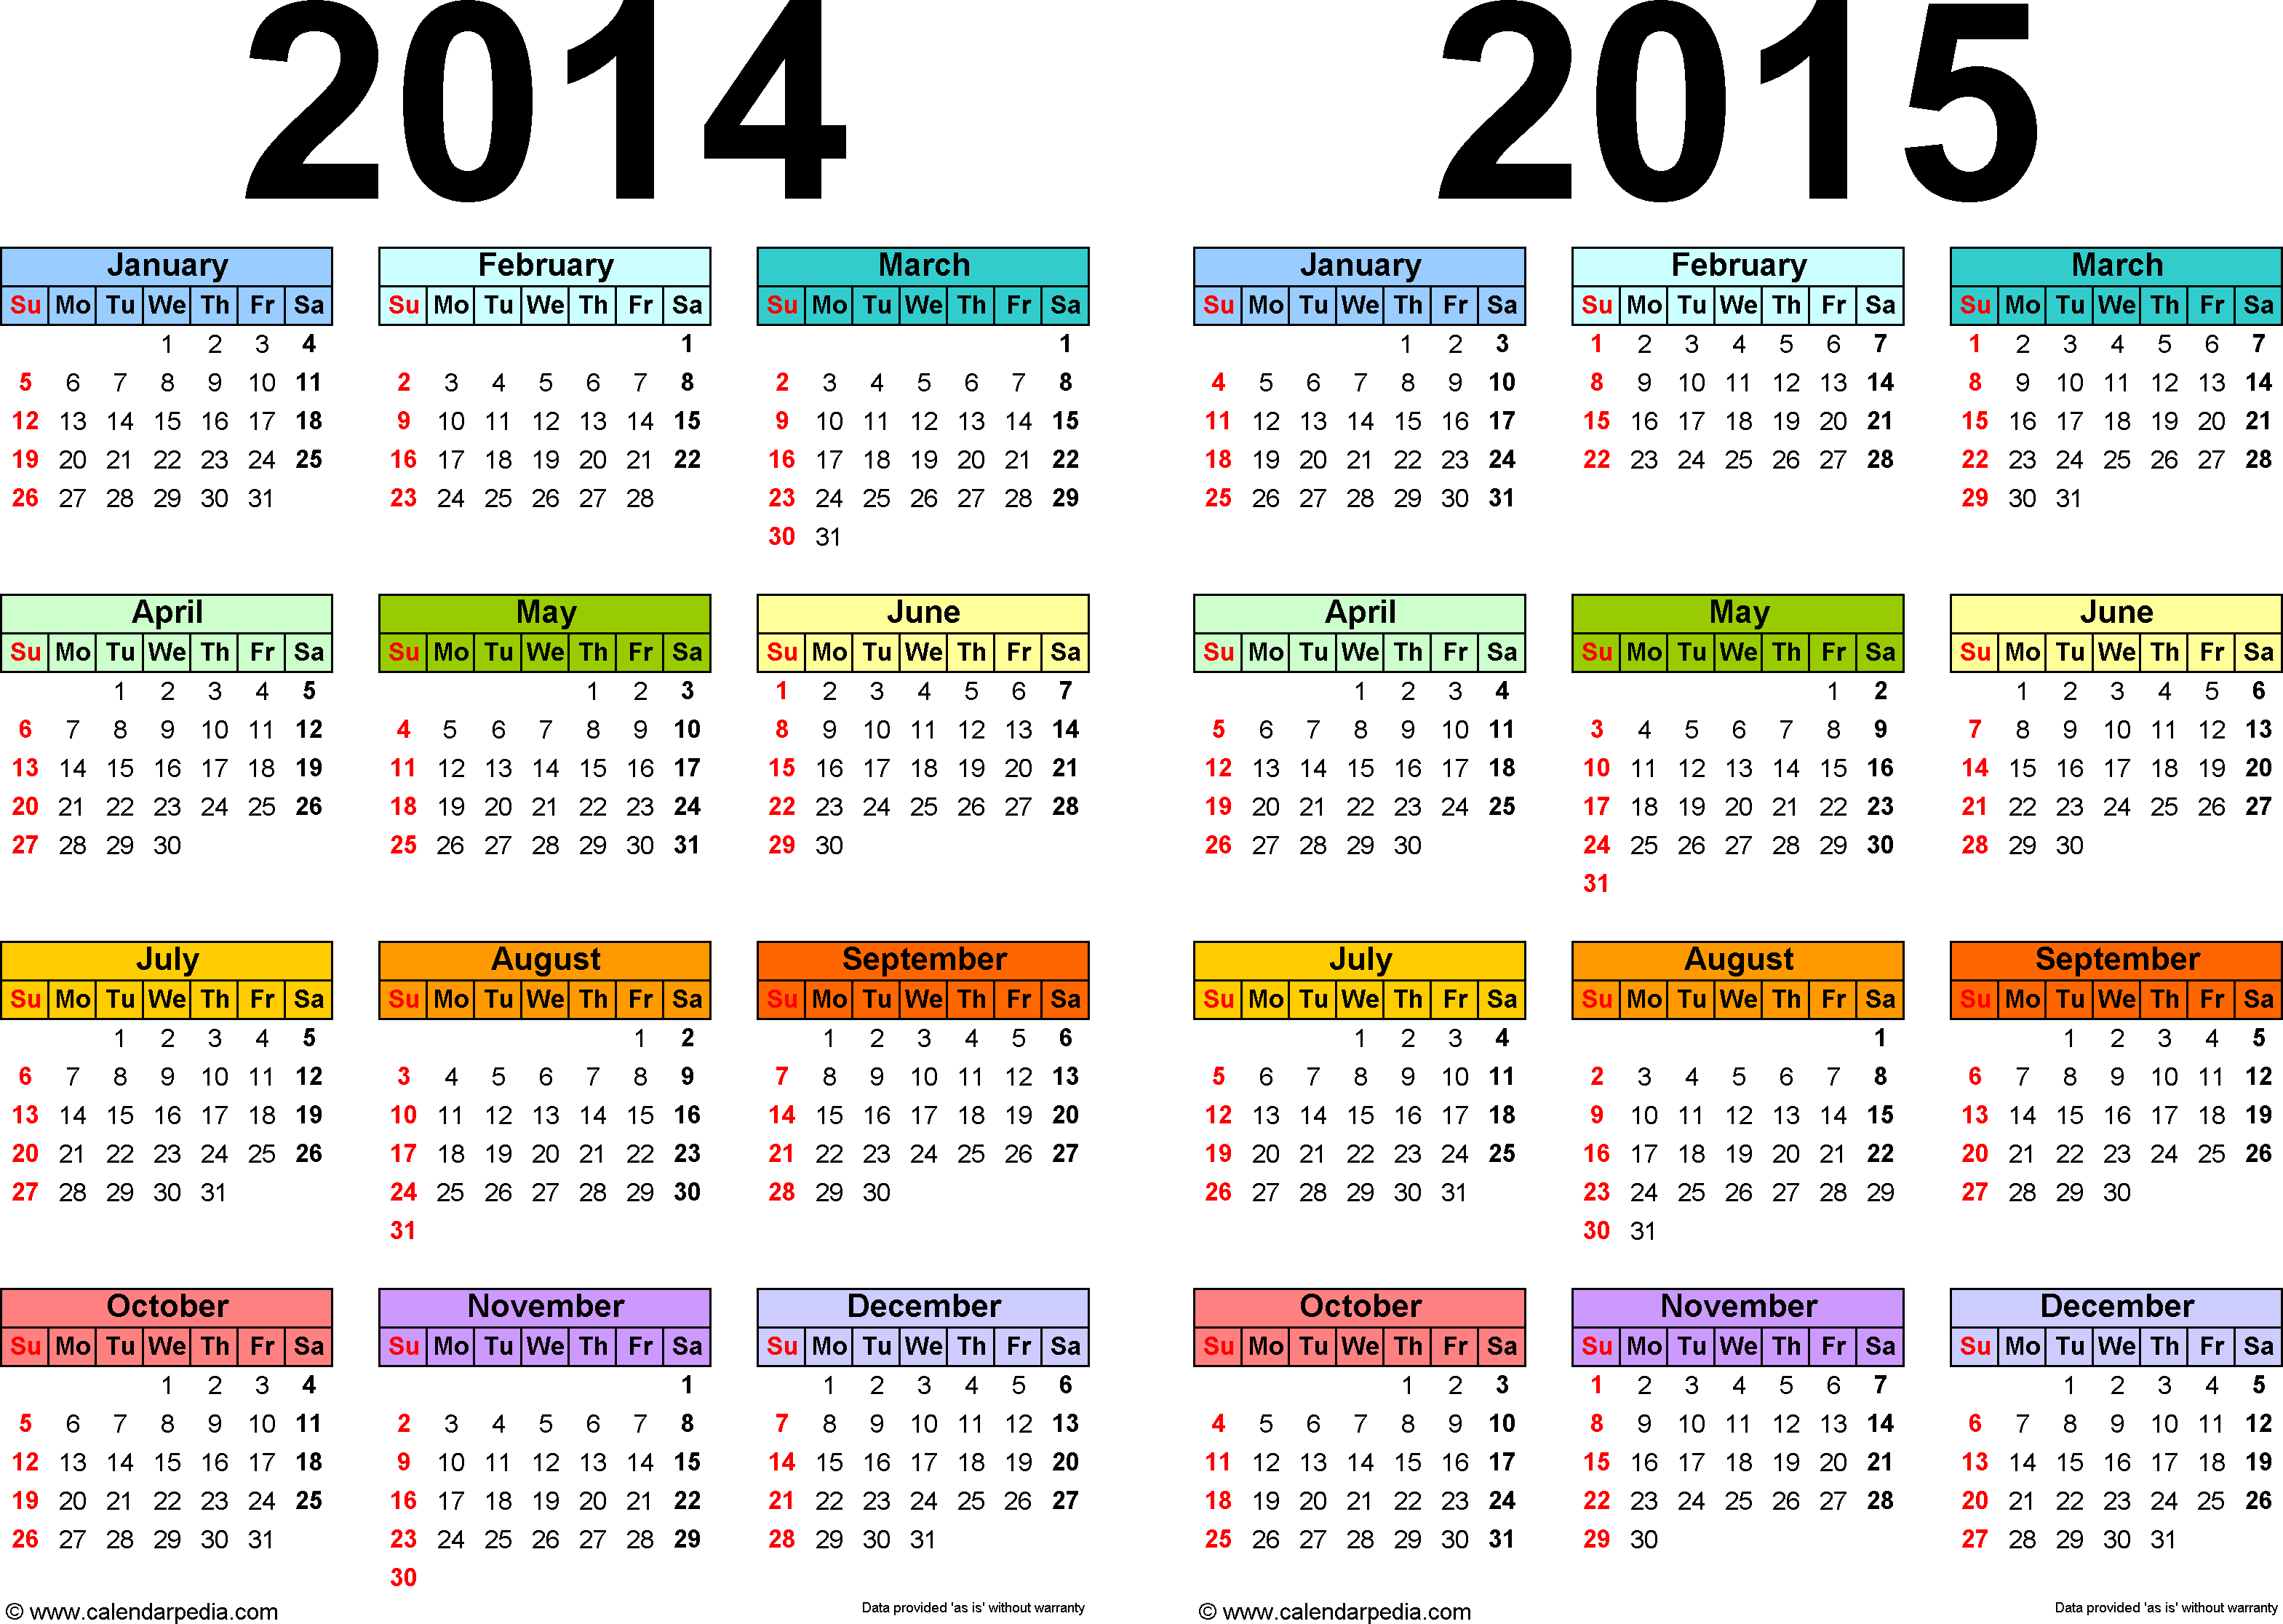 2014-2015 Calendar - free printable two-year Word calendars